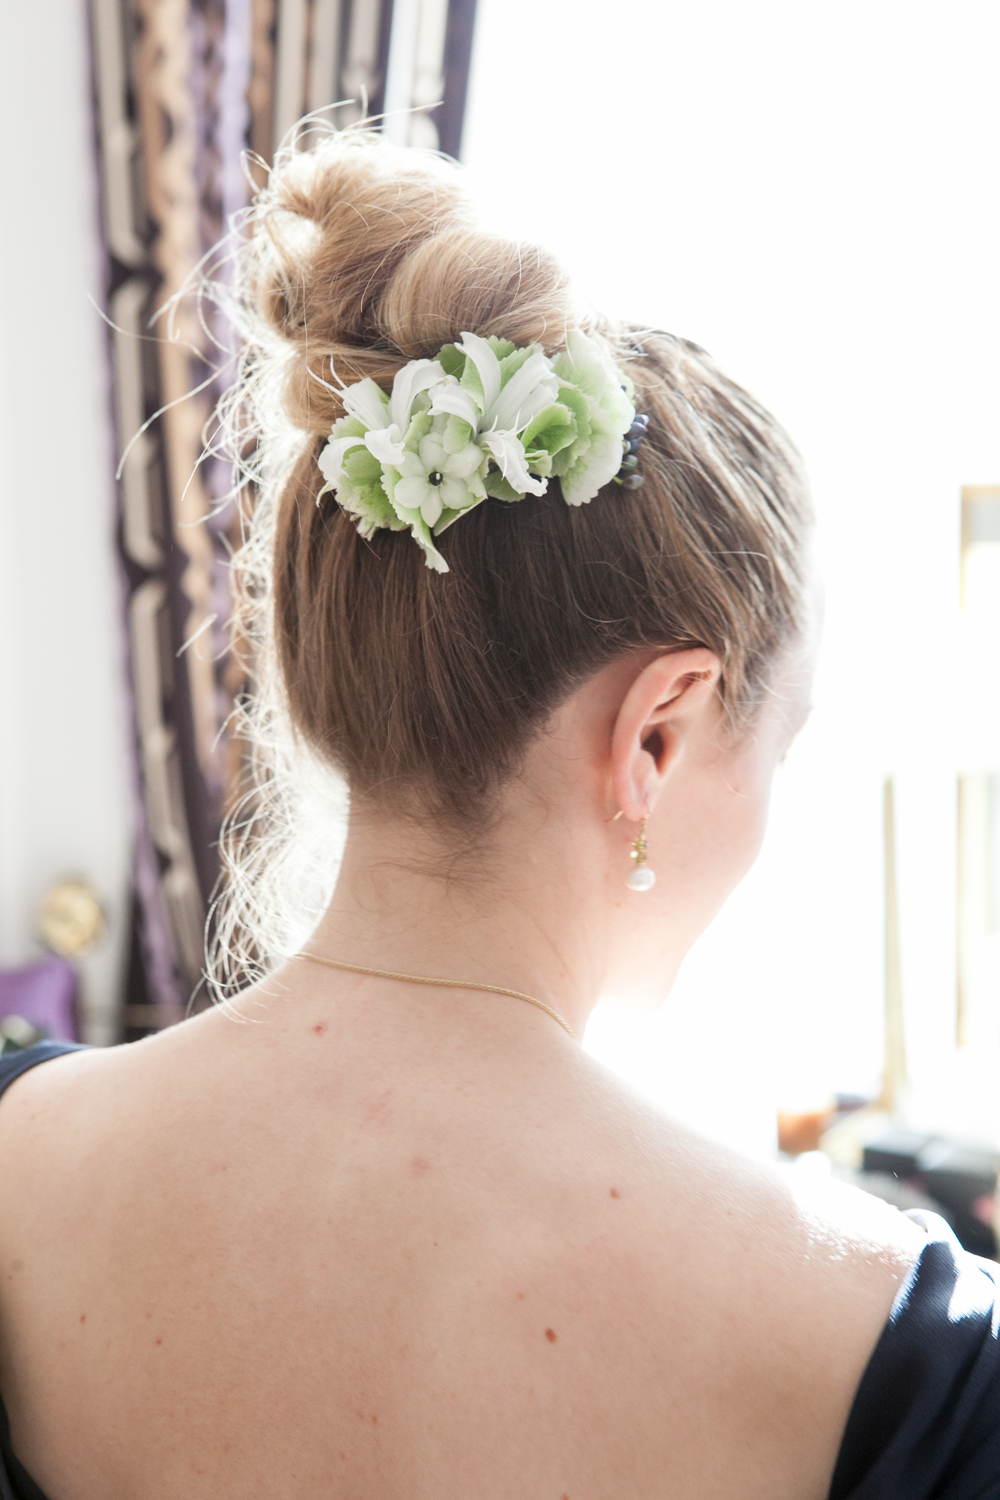 Top knot with flowers